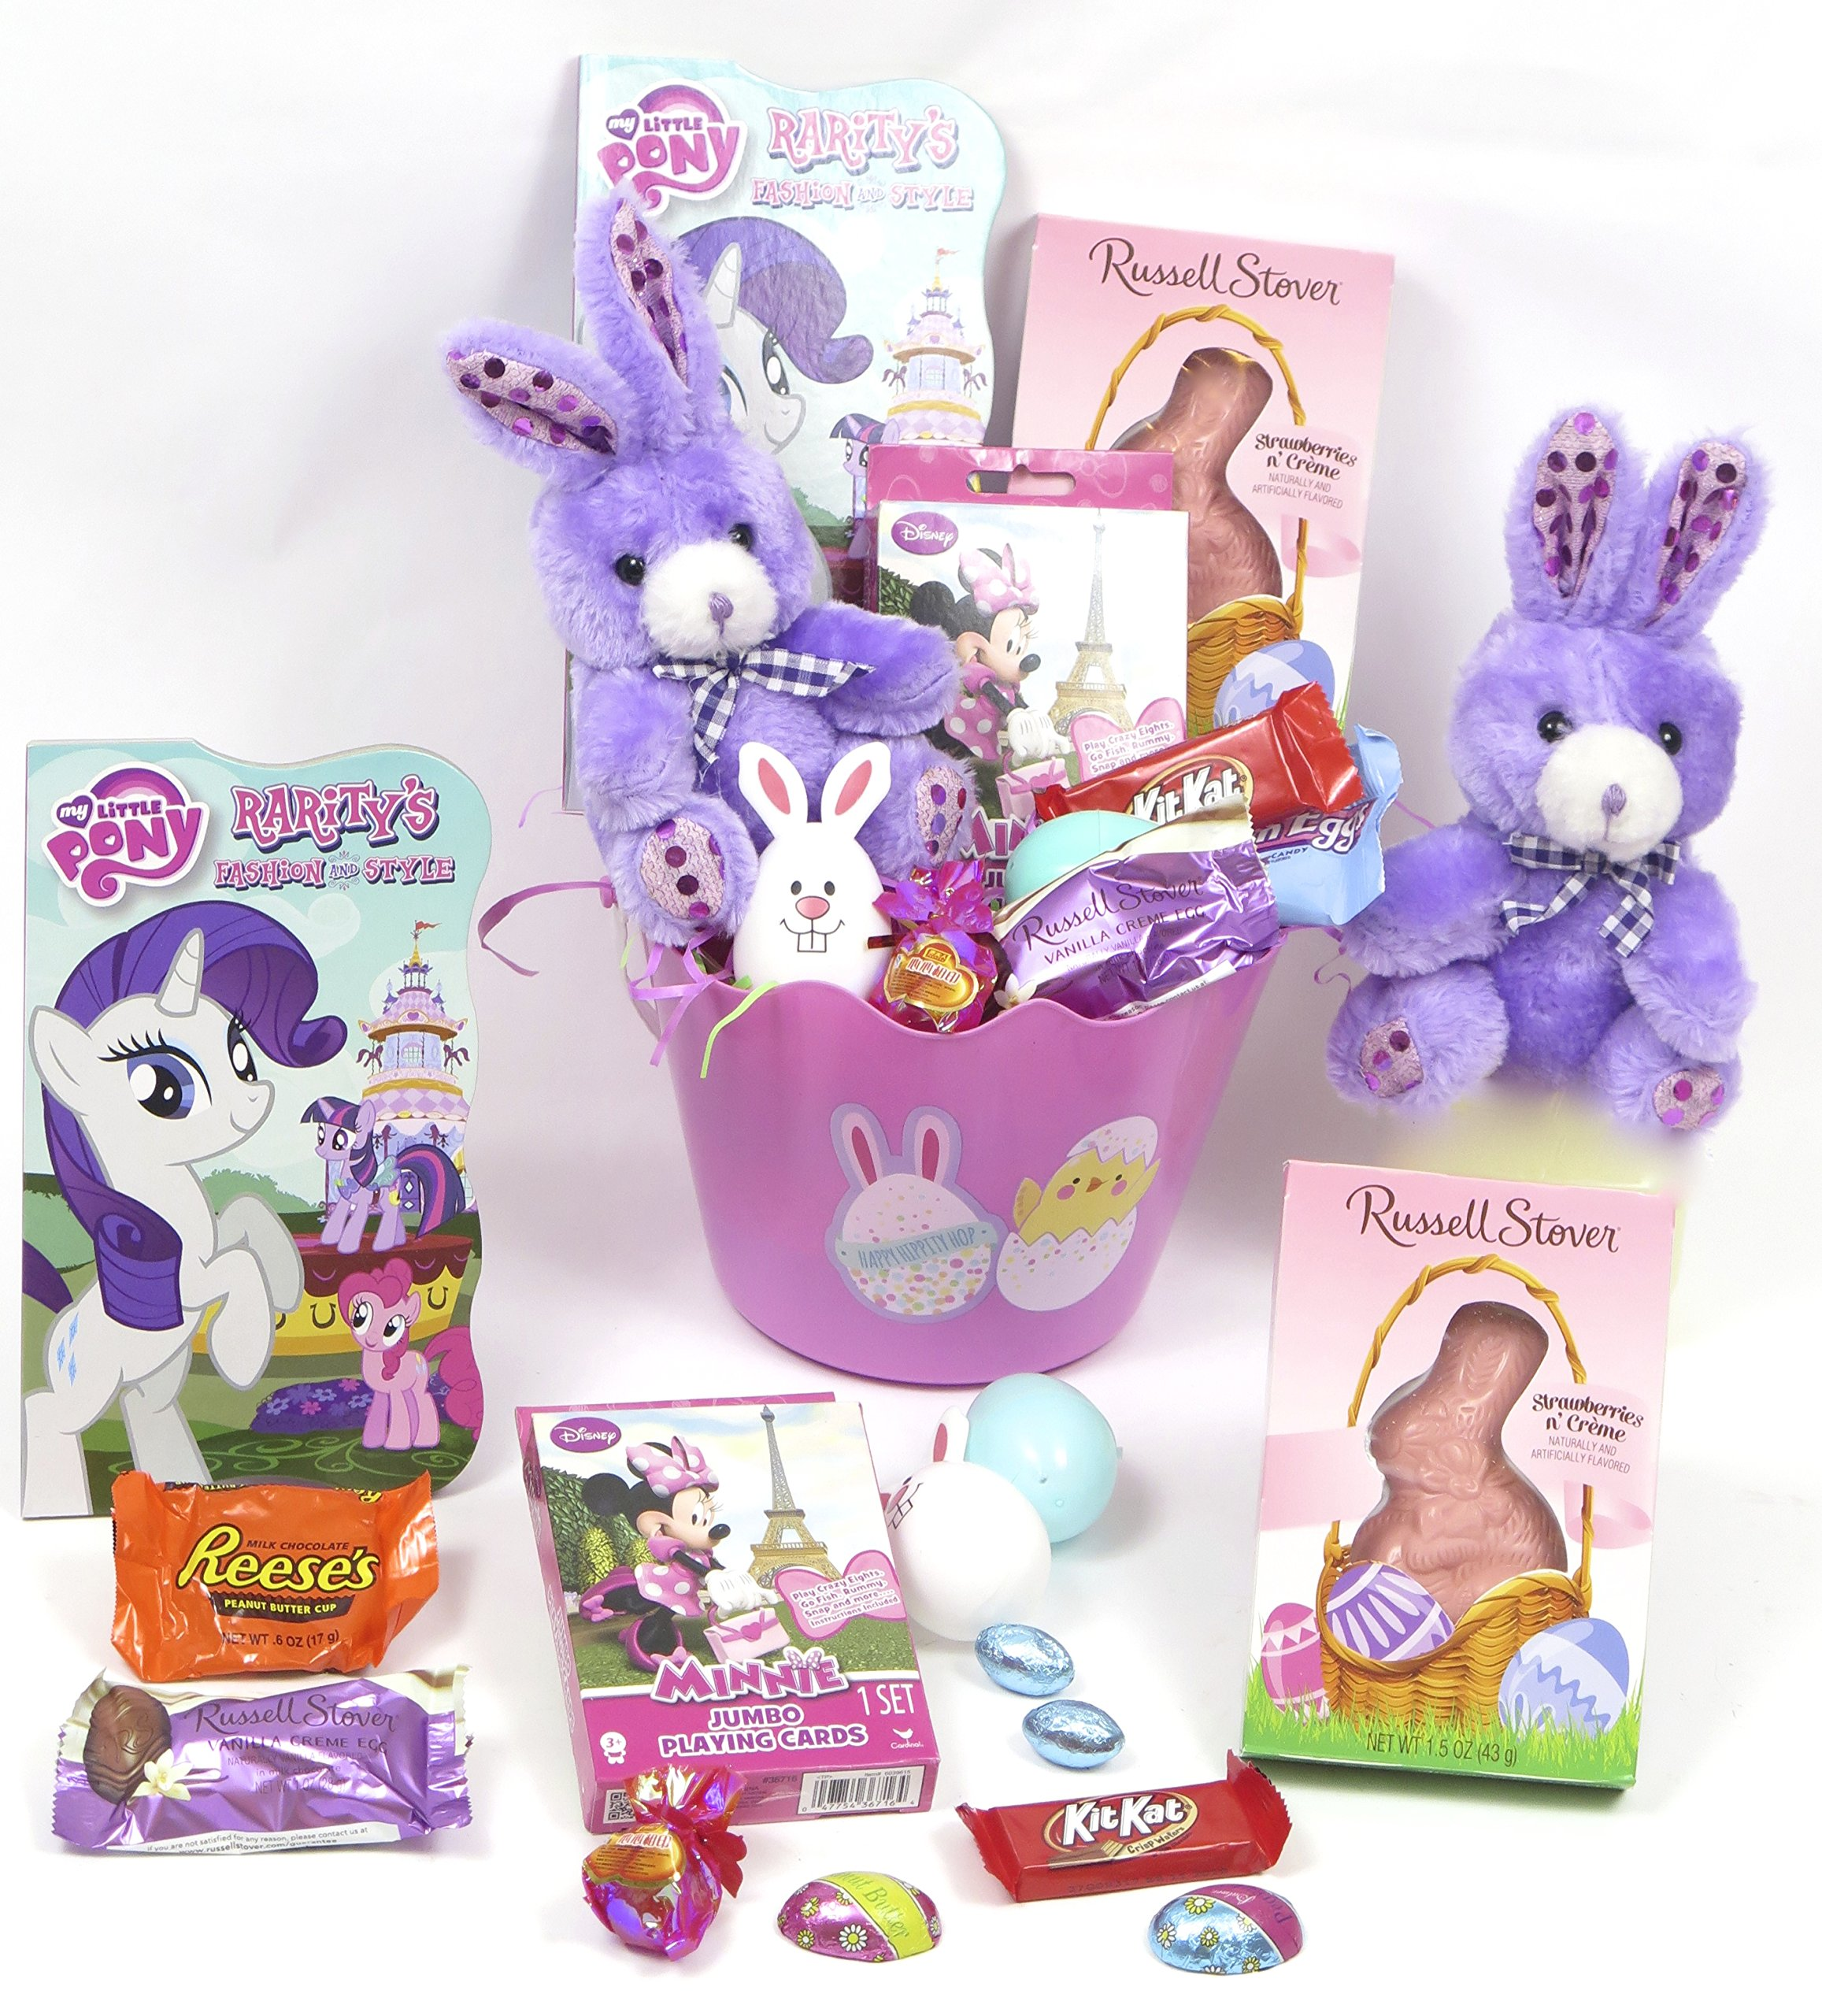 Girl's My Little Pony Pink Easter Basket, Includes Pony Book, Mickey Puzzle, Russell Stover Easter Chocolate Bunny, plush Bunny, and chocolate bars.